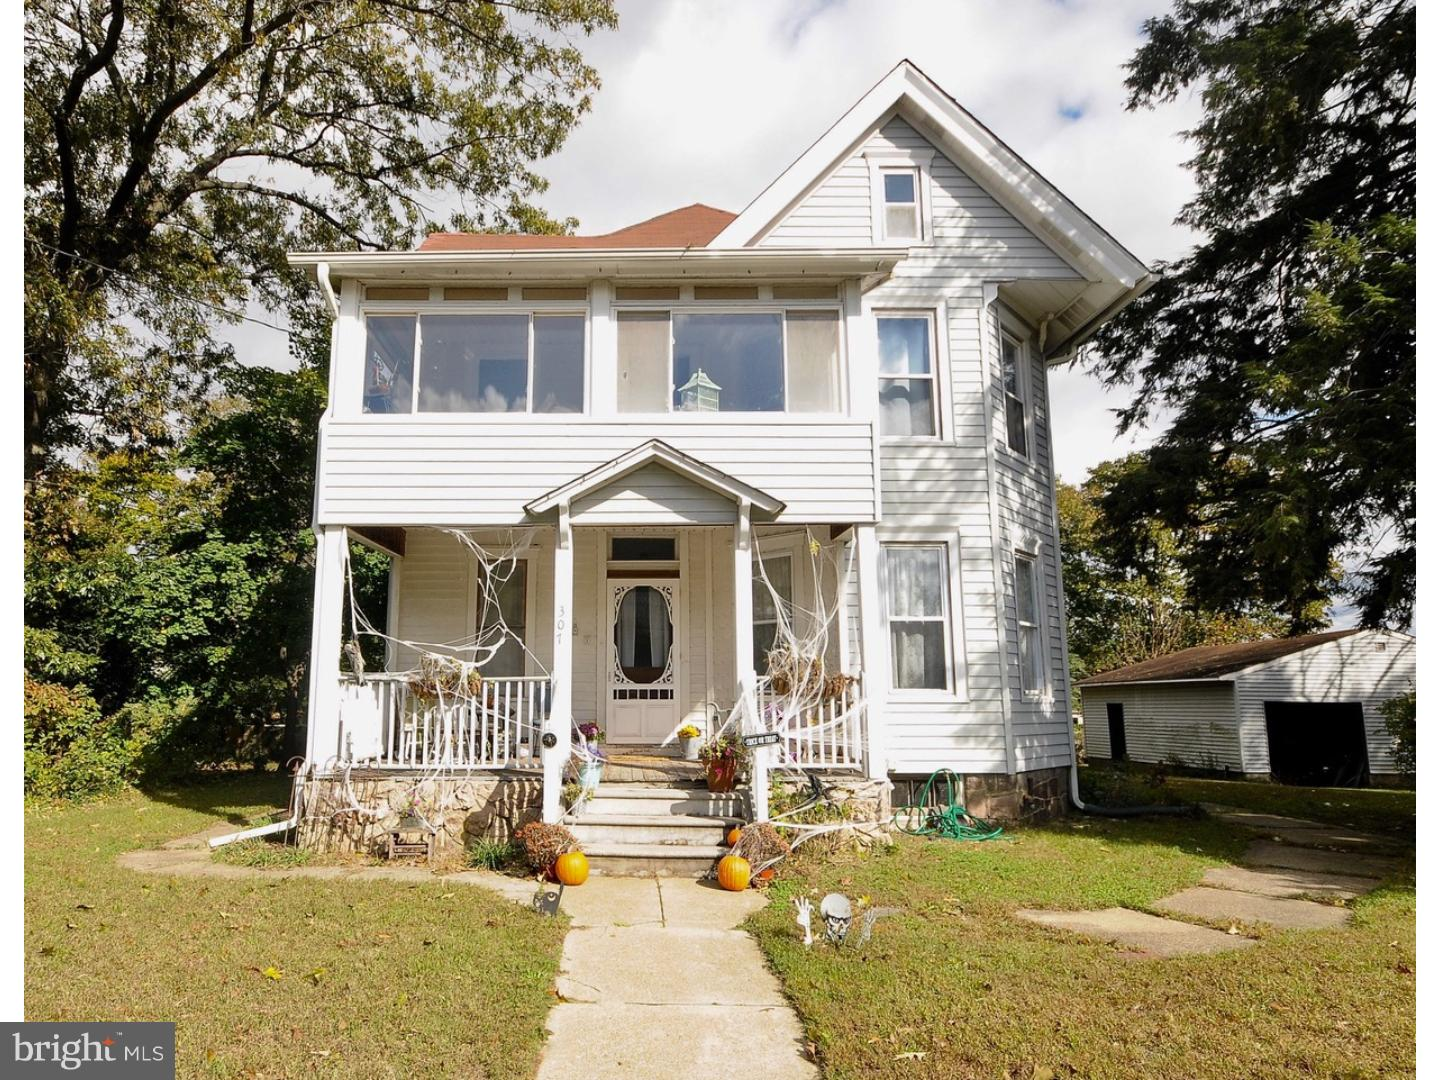 Single Family Home for Sale at 307 COLUMBIA BLVD National Park, New Jersey 08063 United StatesMunicipality: National Park